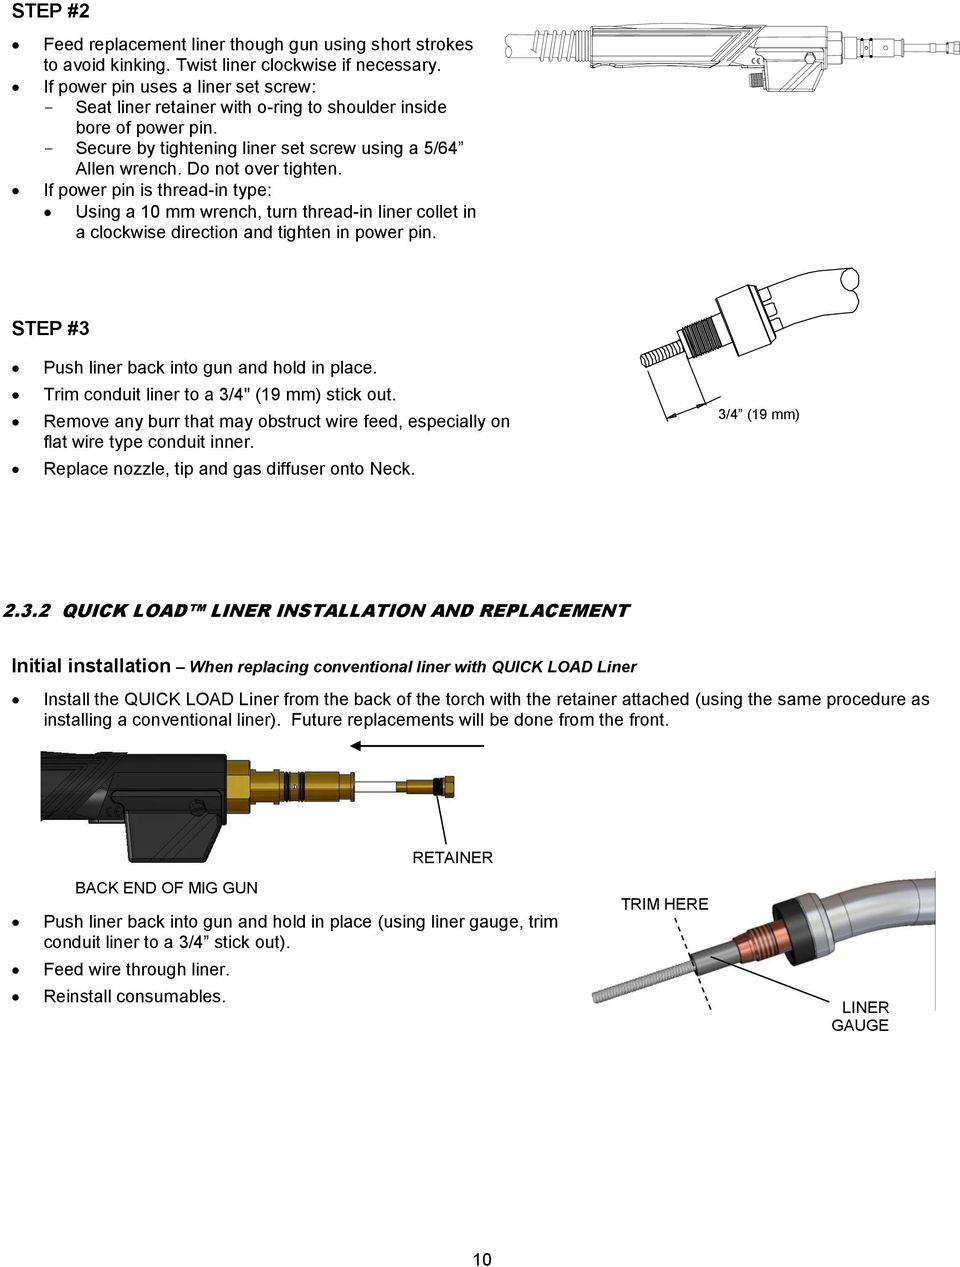 Technical Guide For Tough Gun G1 Series Robotic Air Cooled Mig Guns Rack Wiring Diagram If Power Pin Is Thread In Type Using A 10 Mm Wrench Turn